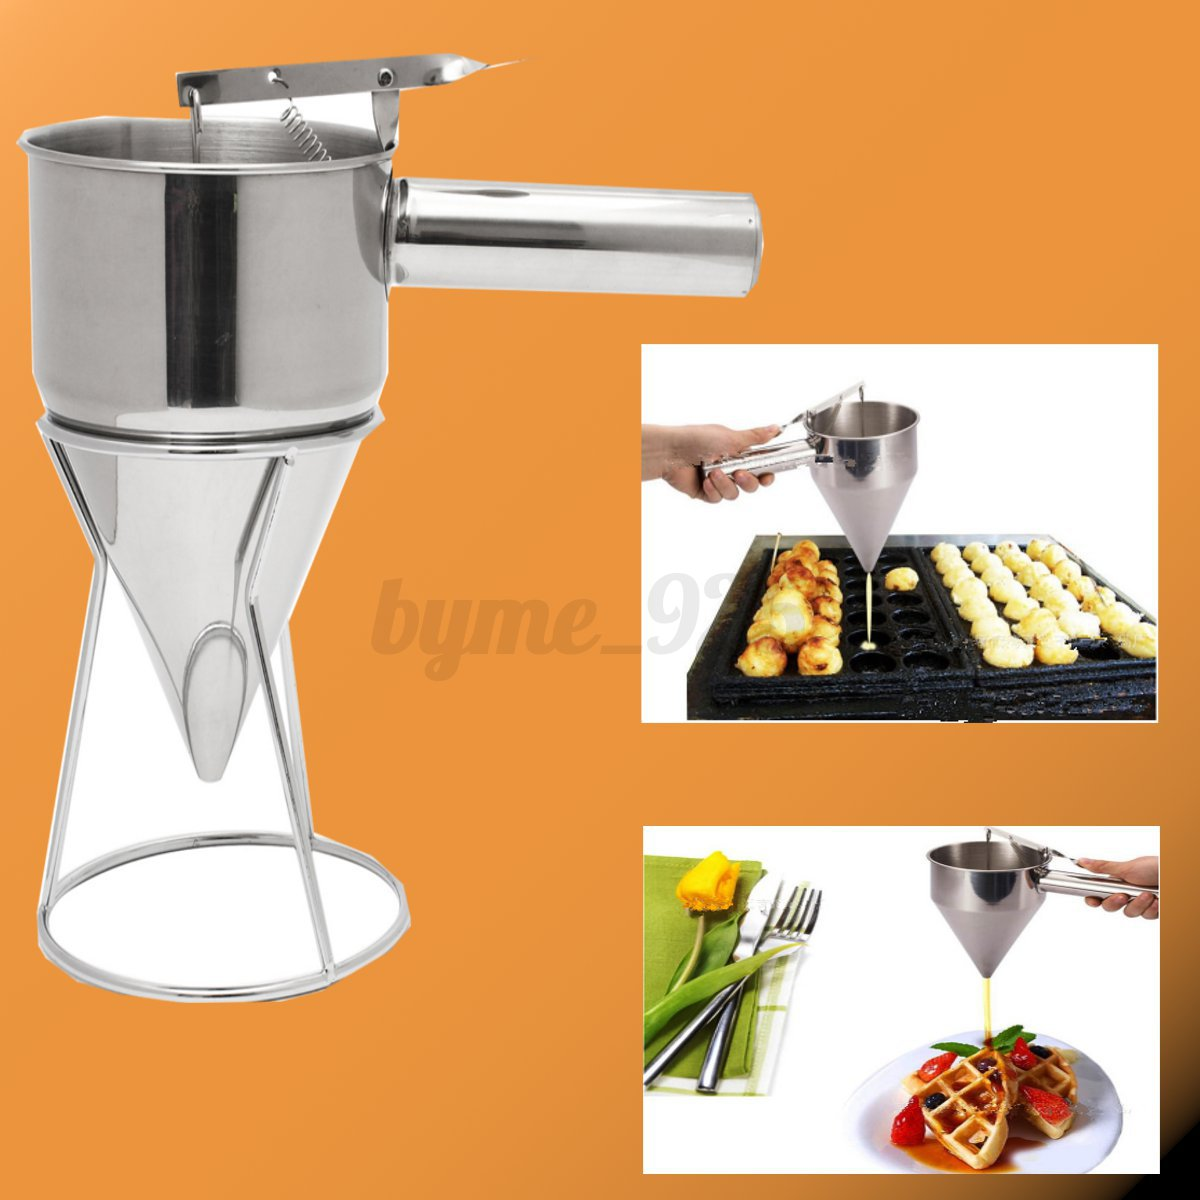 Stainless Steel Conical Funnel With Shelf Octopus Fish